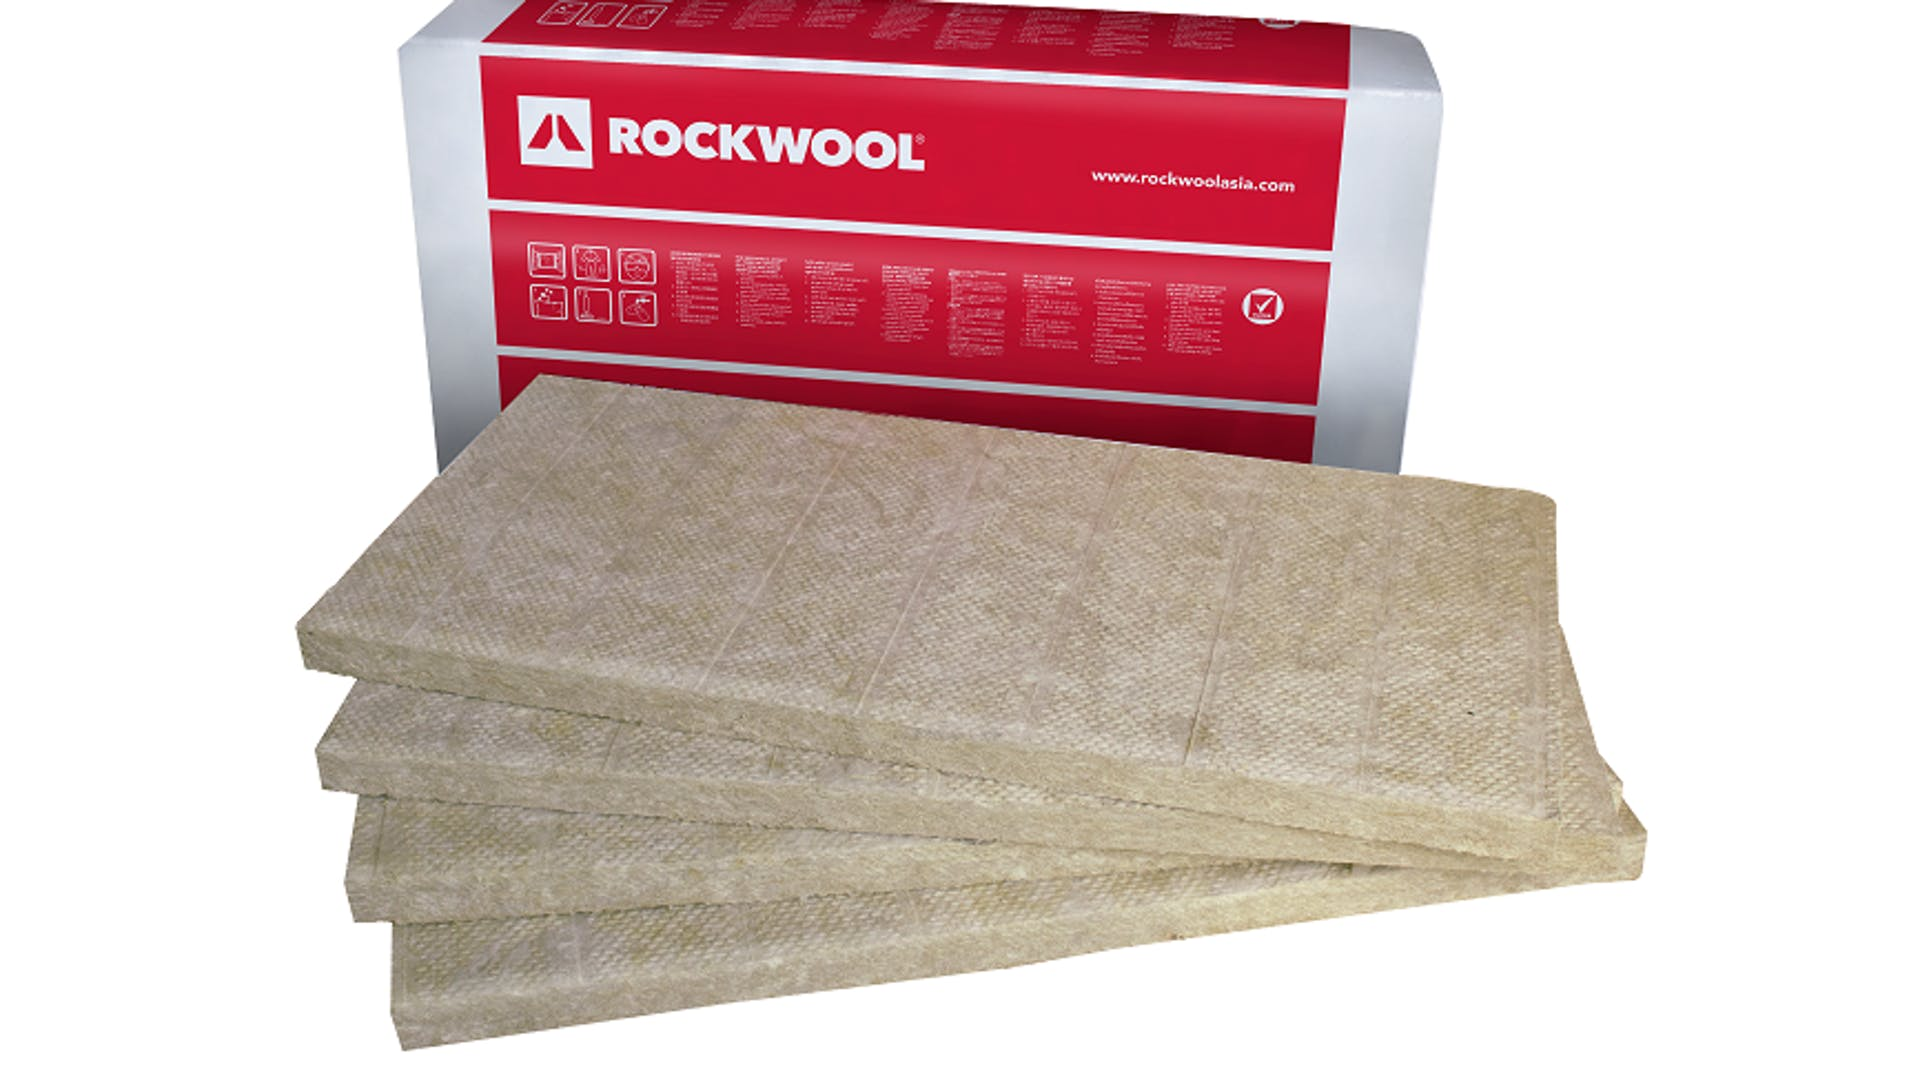 Thermalrock S Product Image